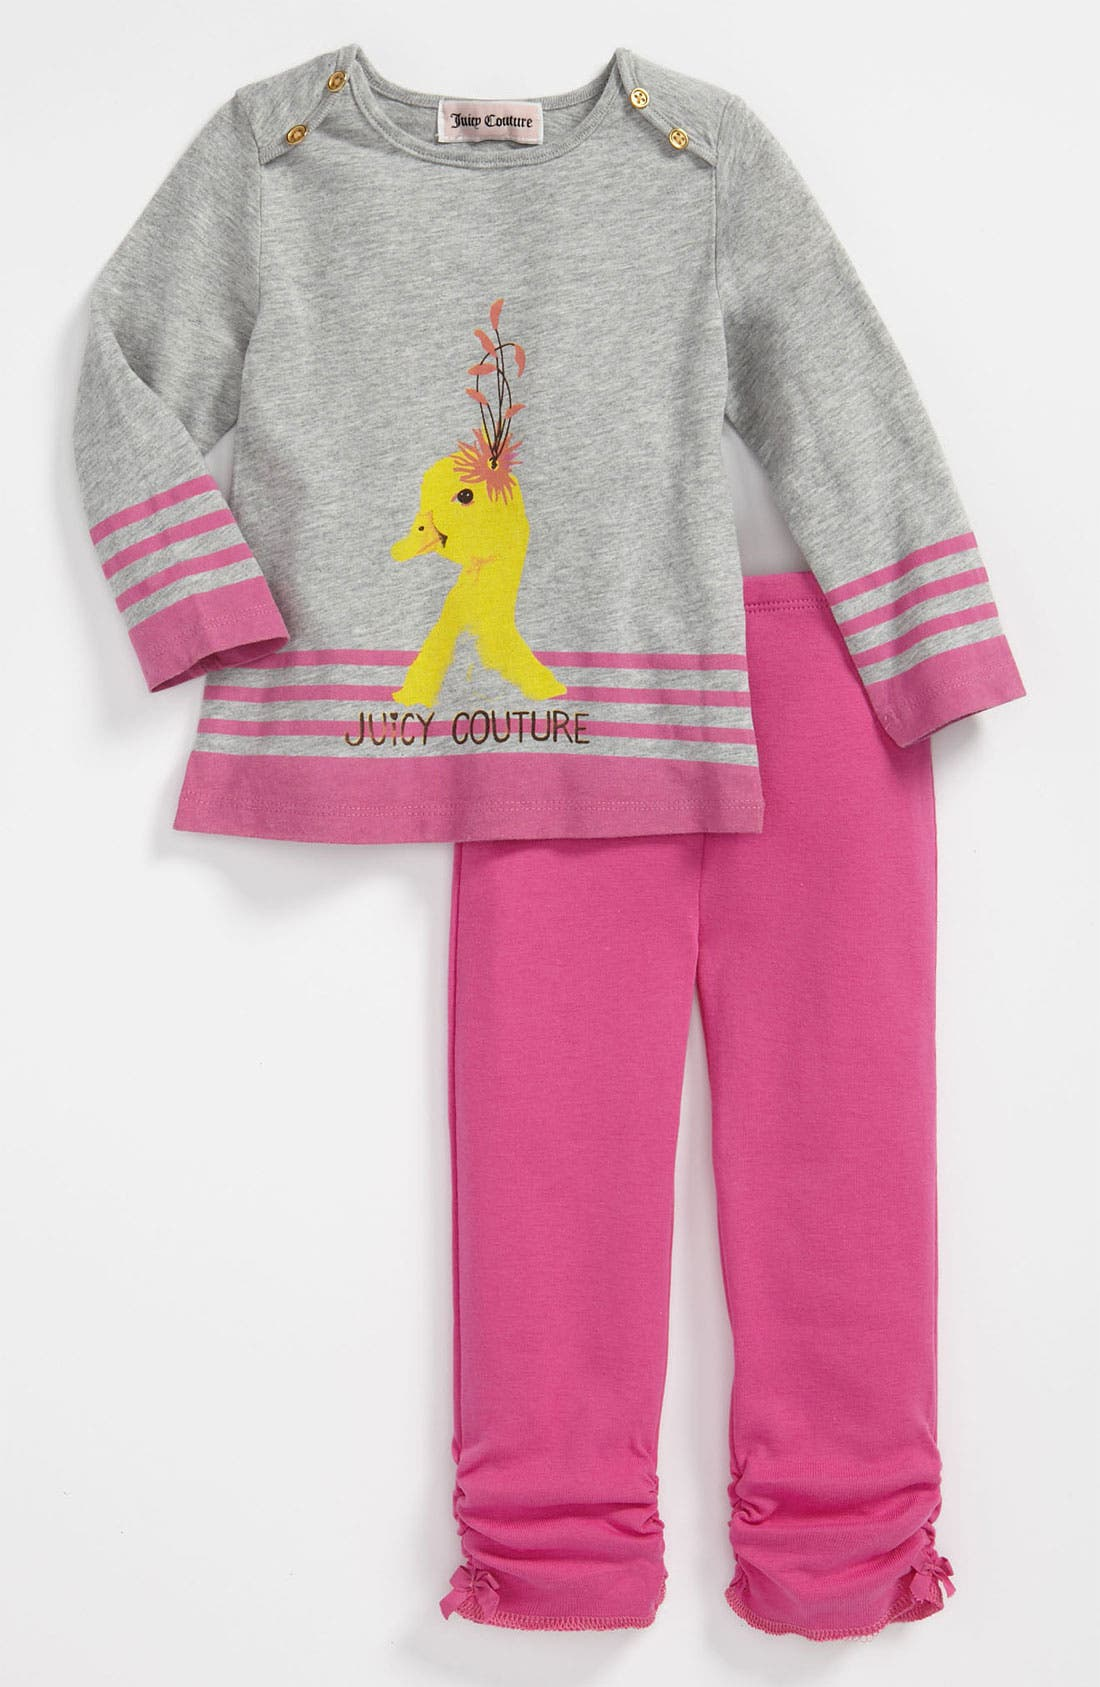 Main Image - Juicy Couture Knit Shirt & Leggings (Infant)